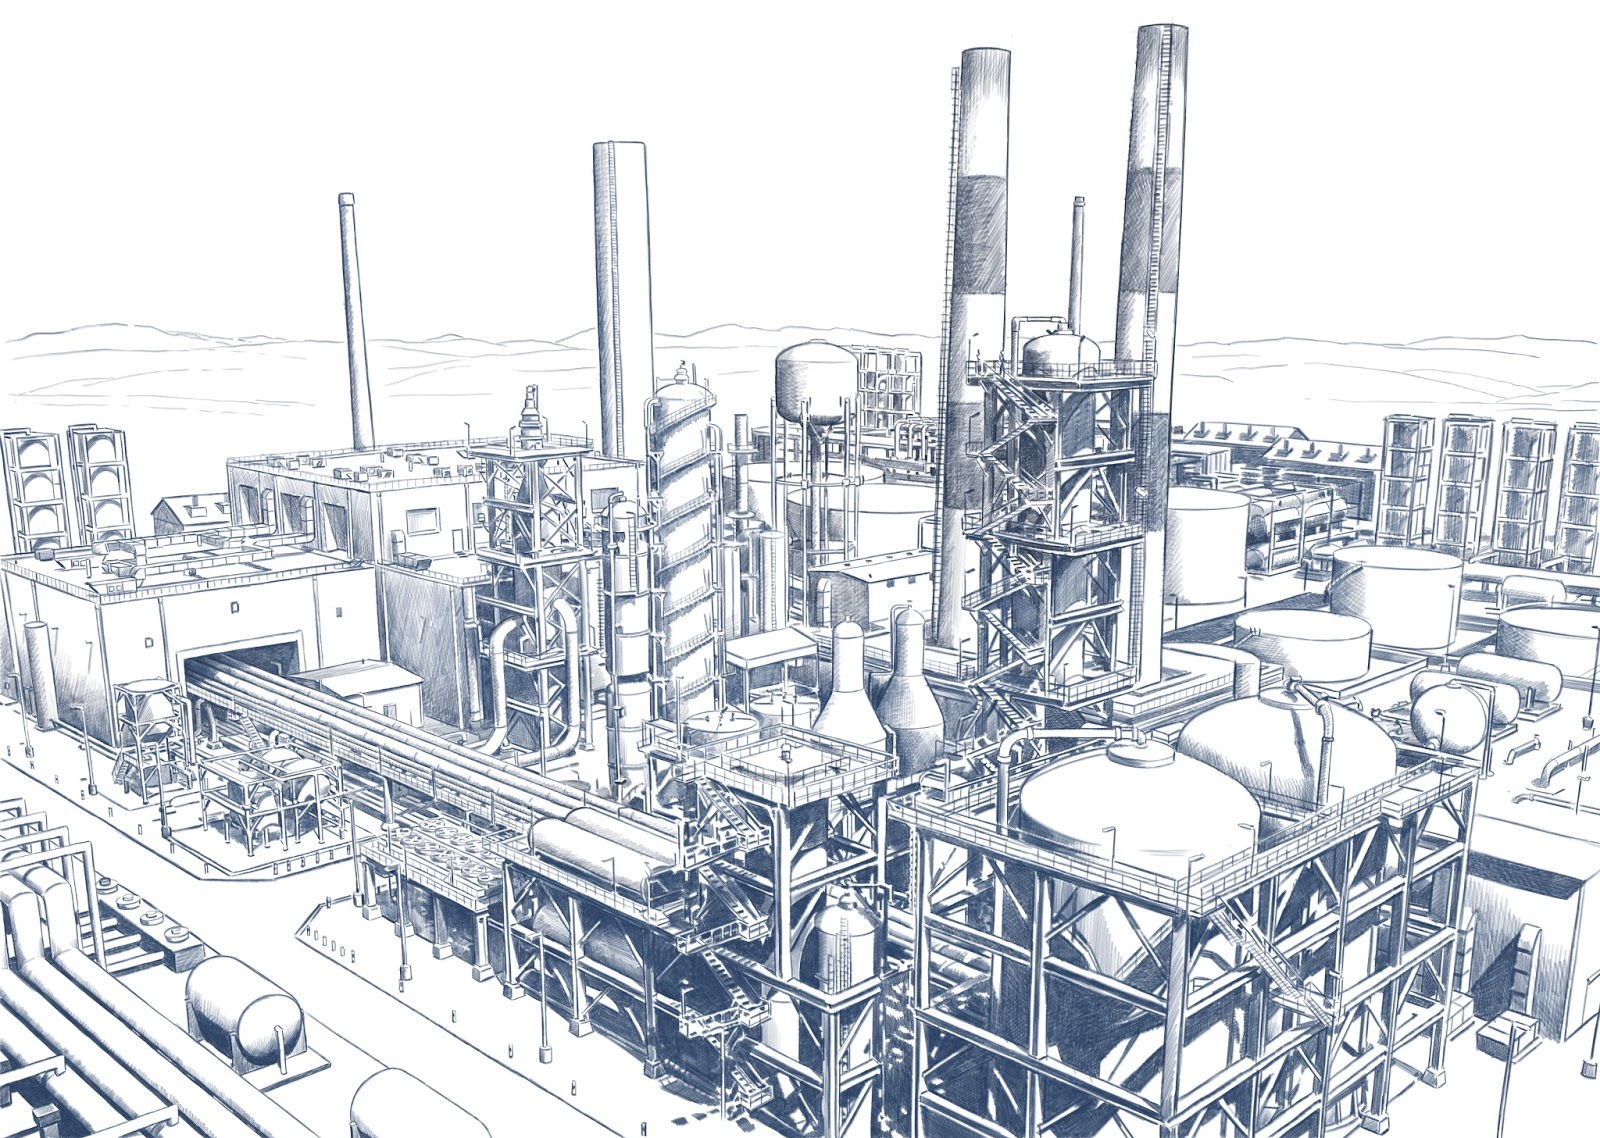 1600x1138 Illustrations And Visuals Pencil Drawing Of An Oil Refinery.